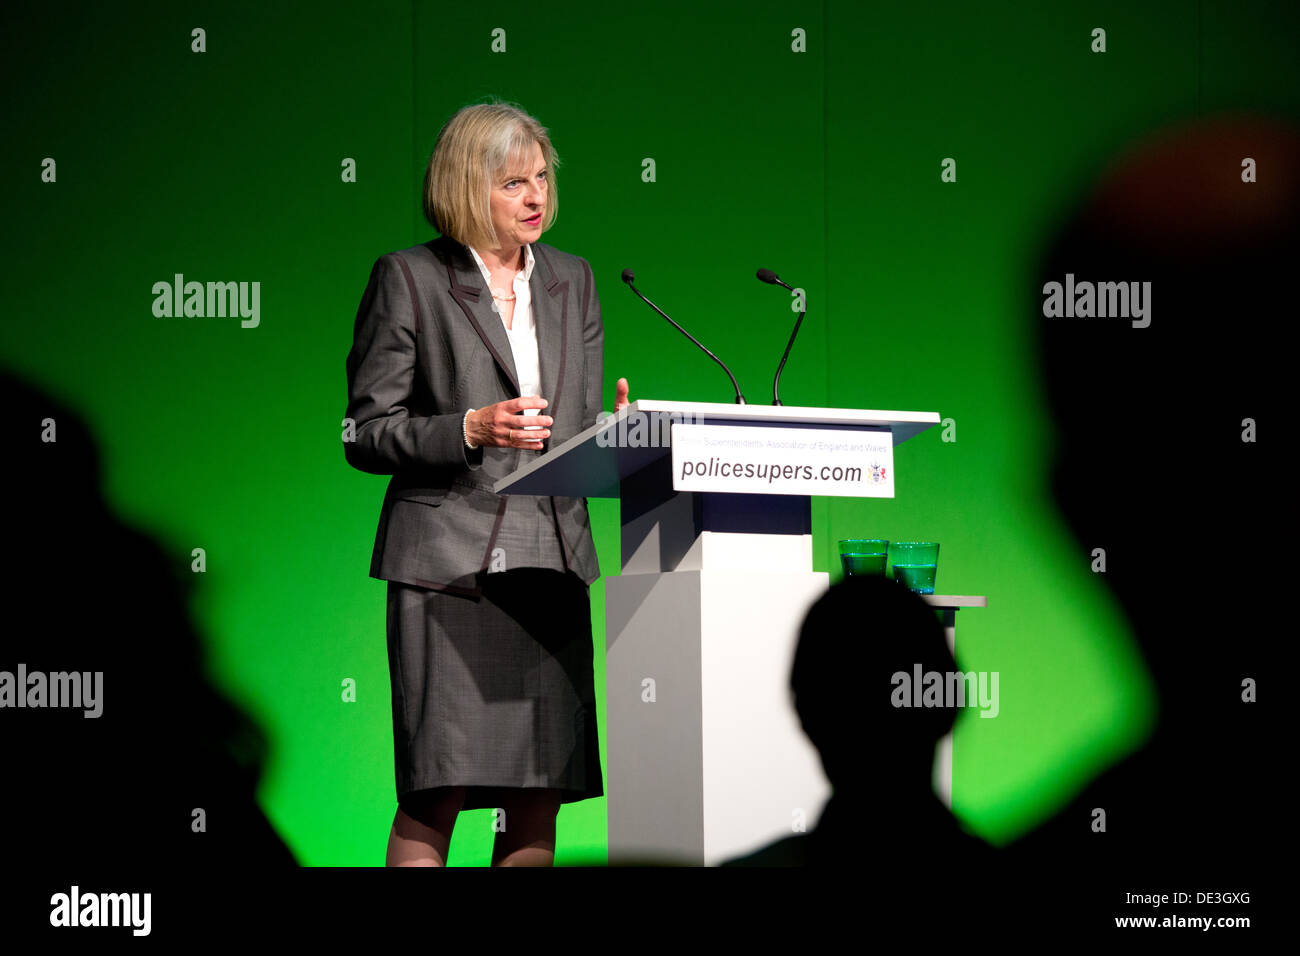 Home Secretary Theresa May giving her speech at the Association of Police Superintendents Annual Conference. - Stock Image